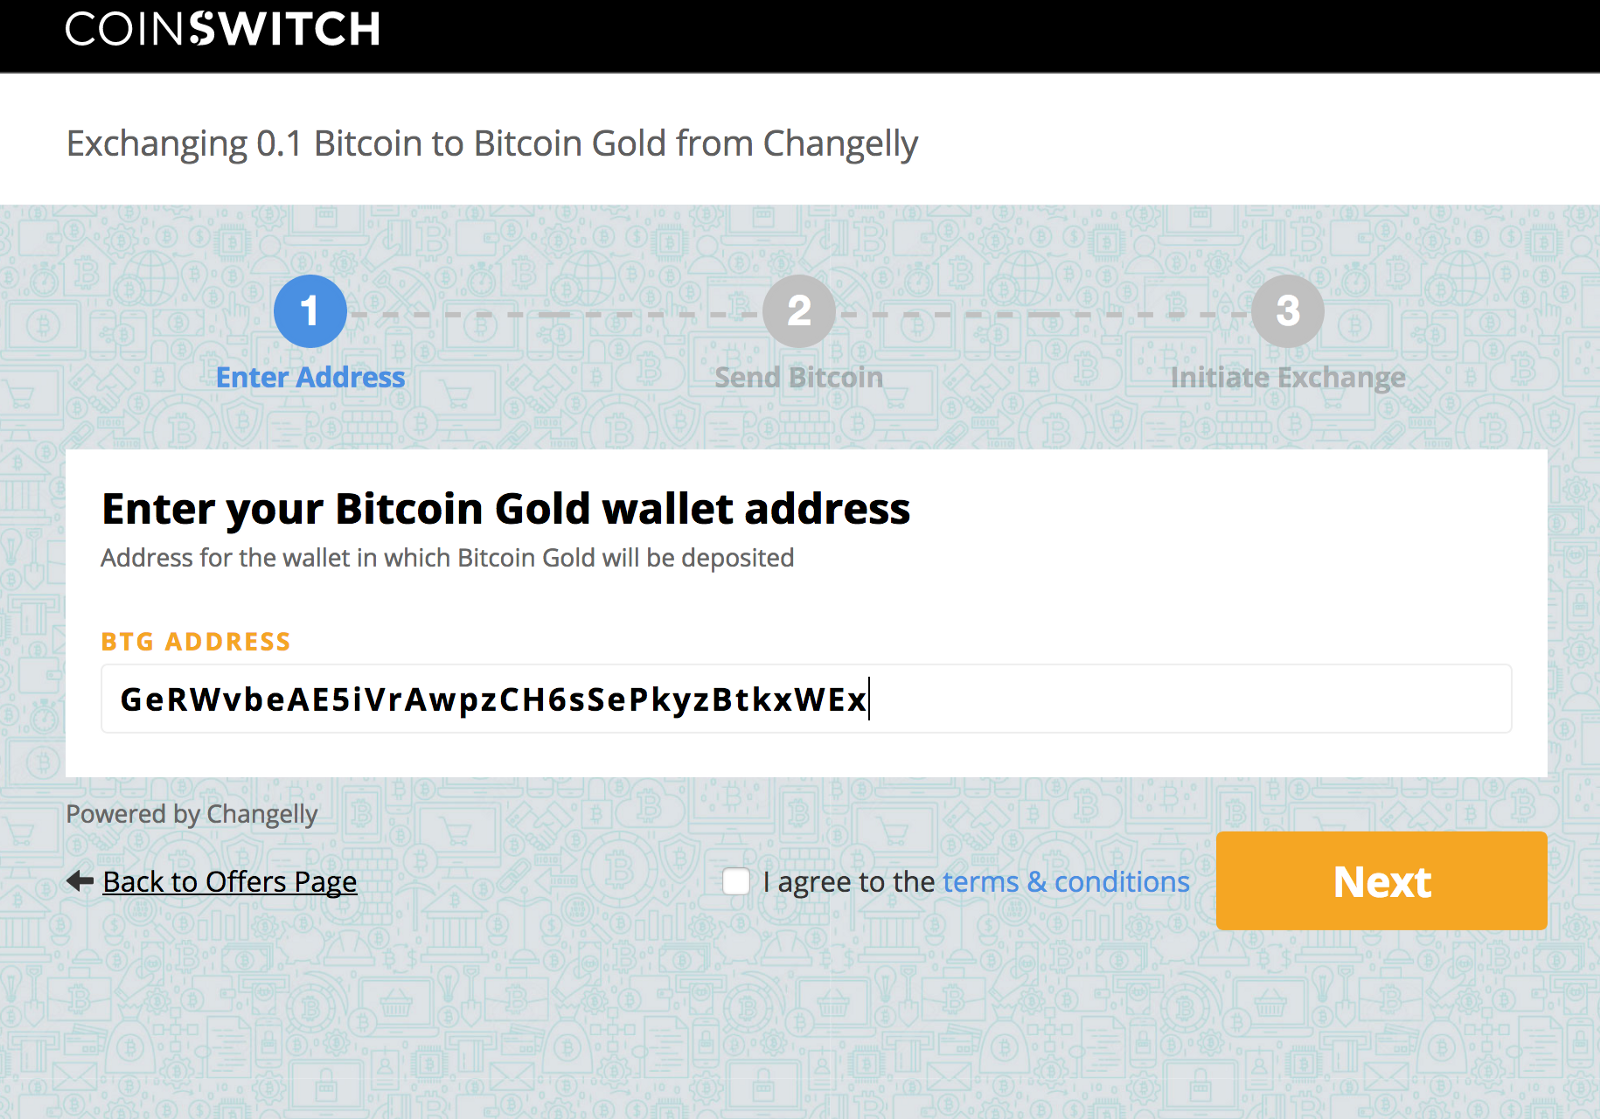 How to buy bitcoin gold btg from coinswitch coinswitch provide your bitcoin gold btg wallet address you will receive your bitcoin gold in that wallet after the order completes please double check the address ccuart Choice Image